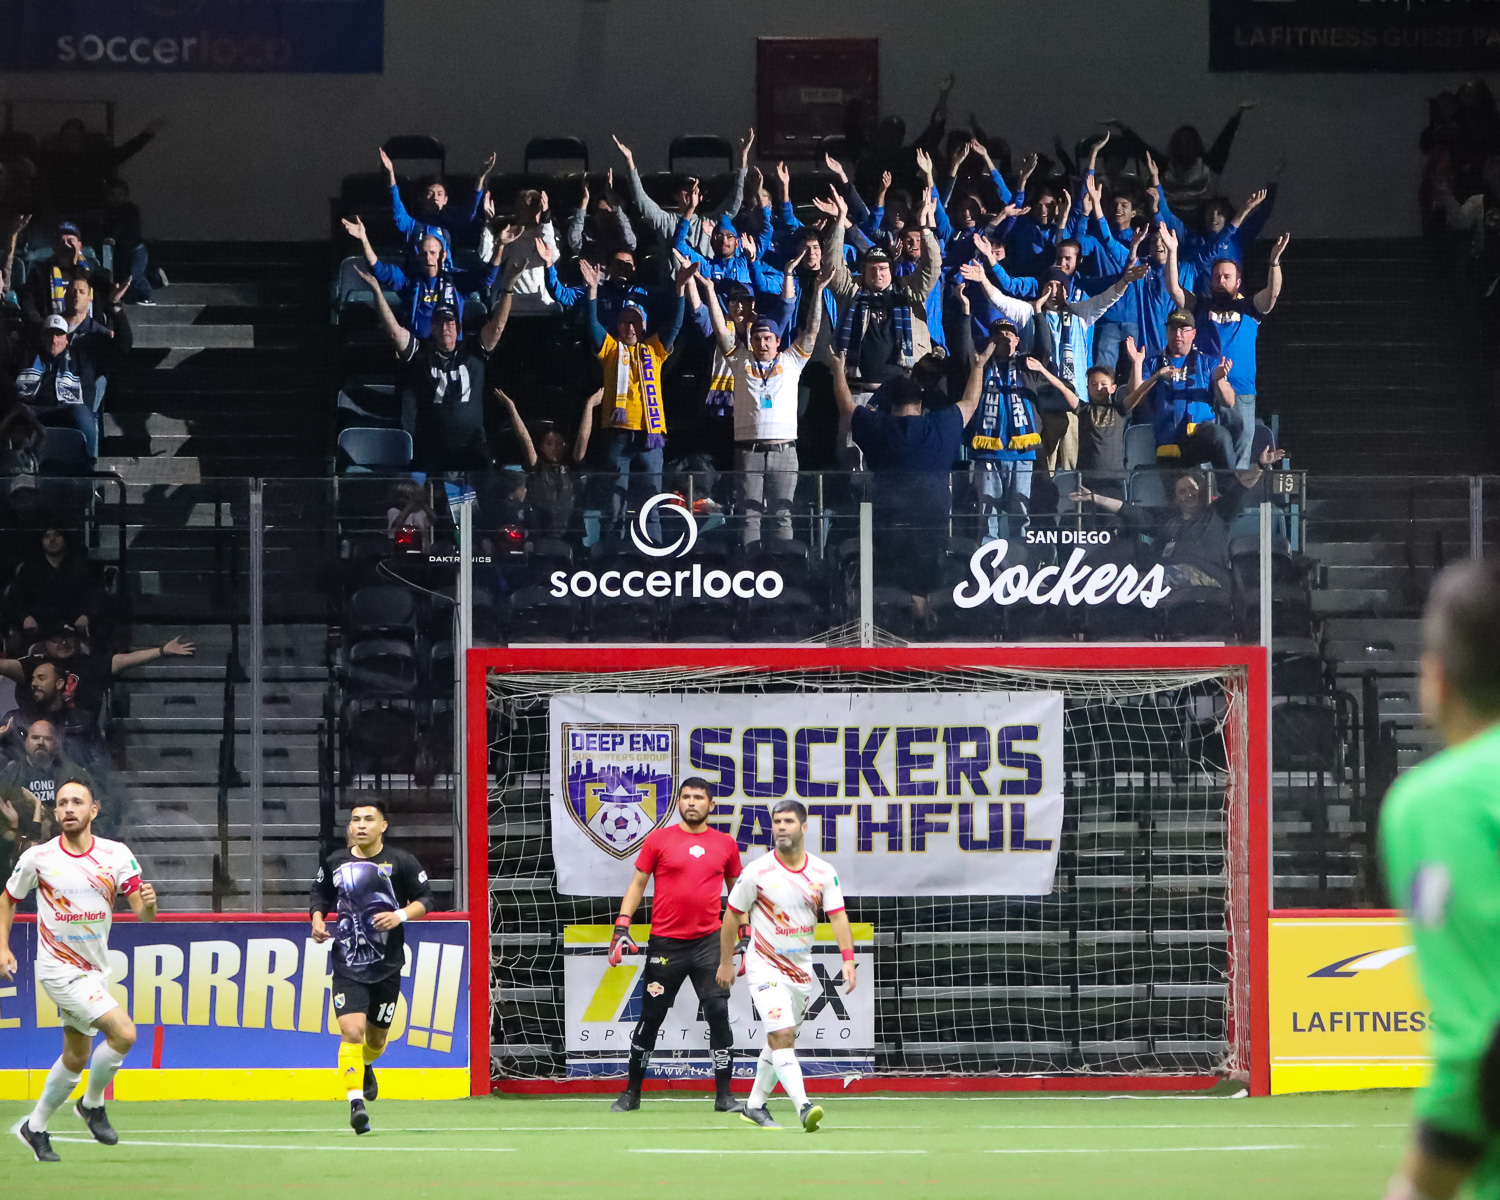 If you haven't been to a Sockers game, change that. Here's why.